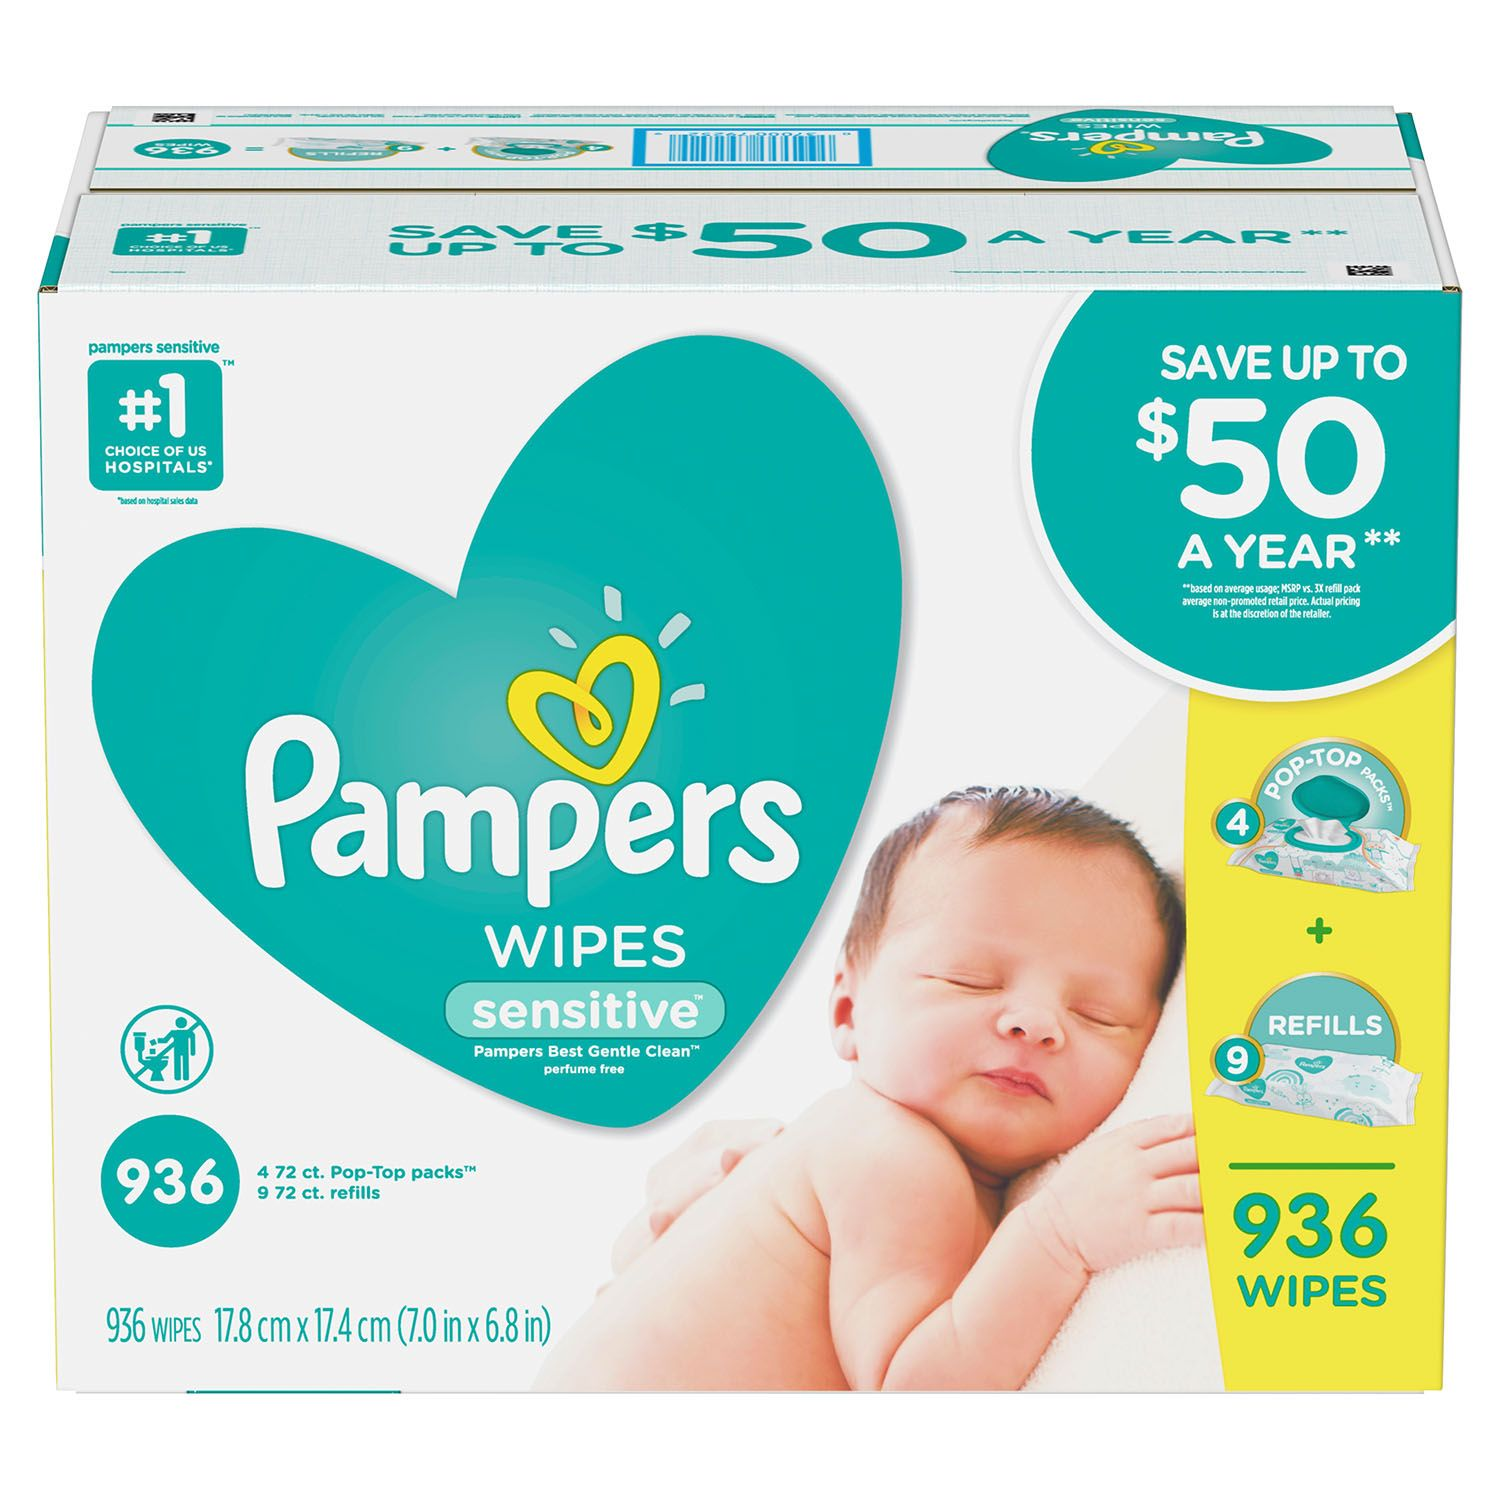 Pampers Sensitive Baby Wipes (936 ct.) - Sold & shipped Only by Discount Market Place